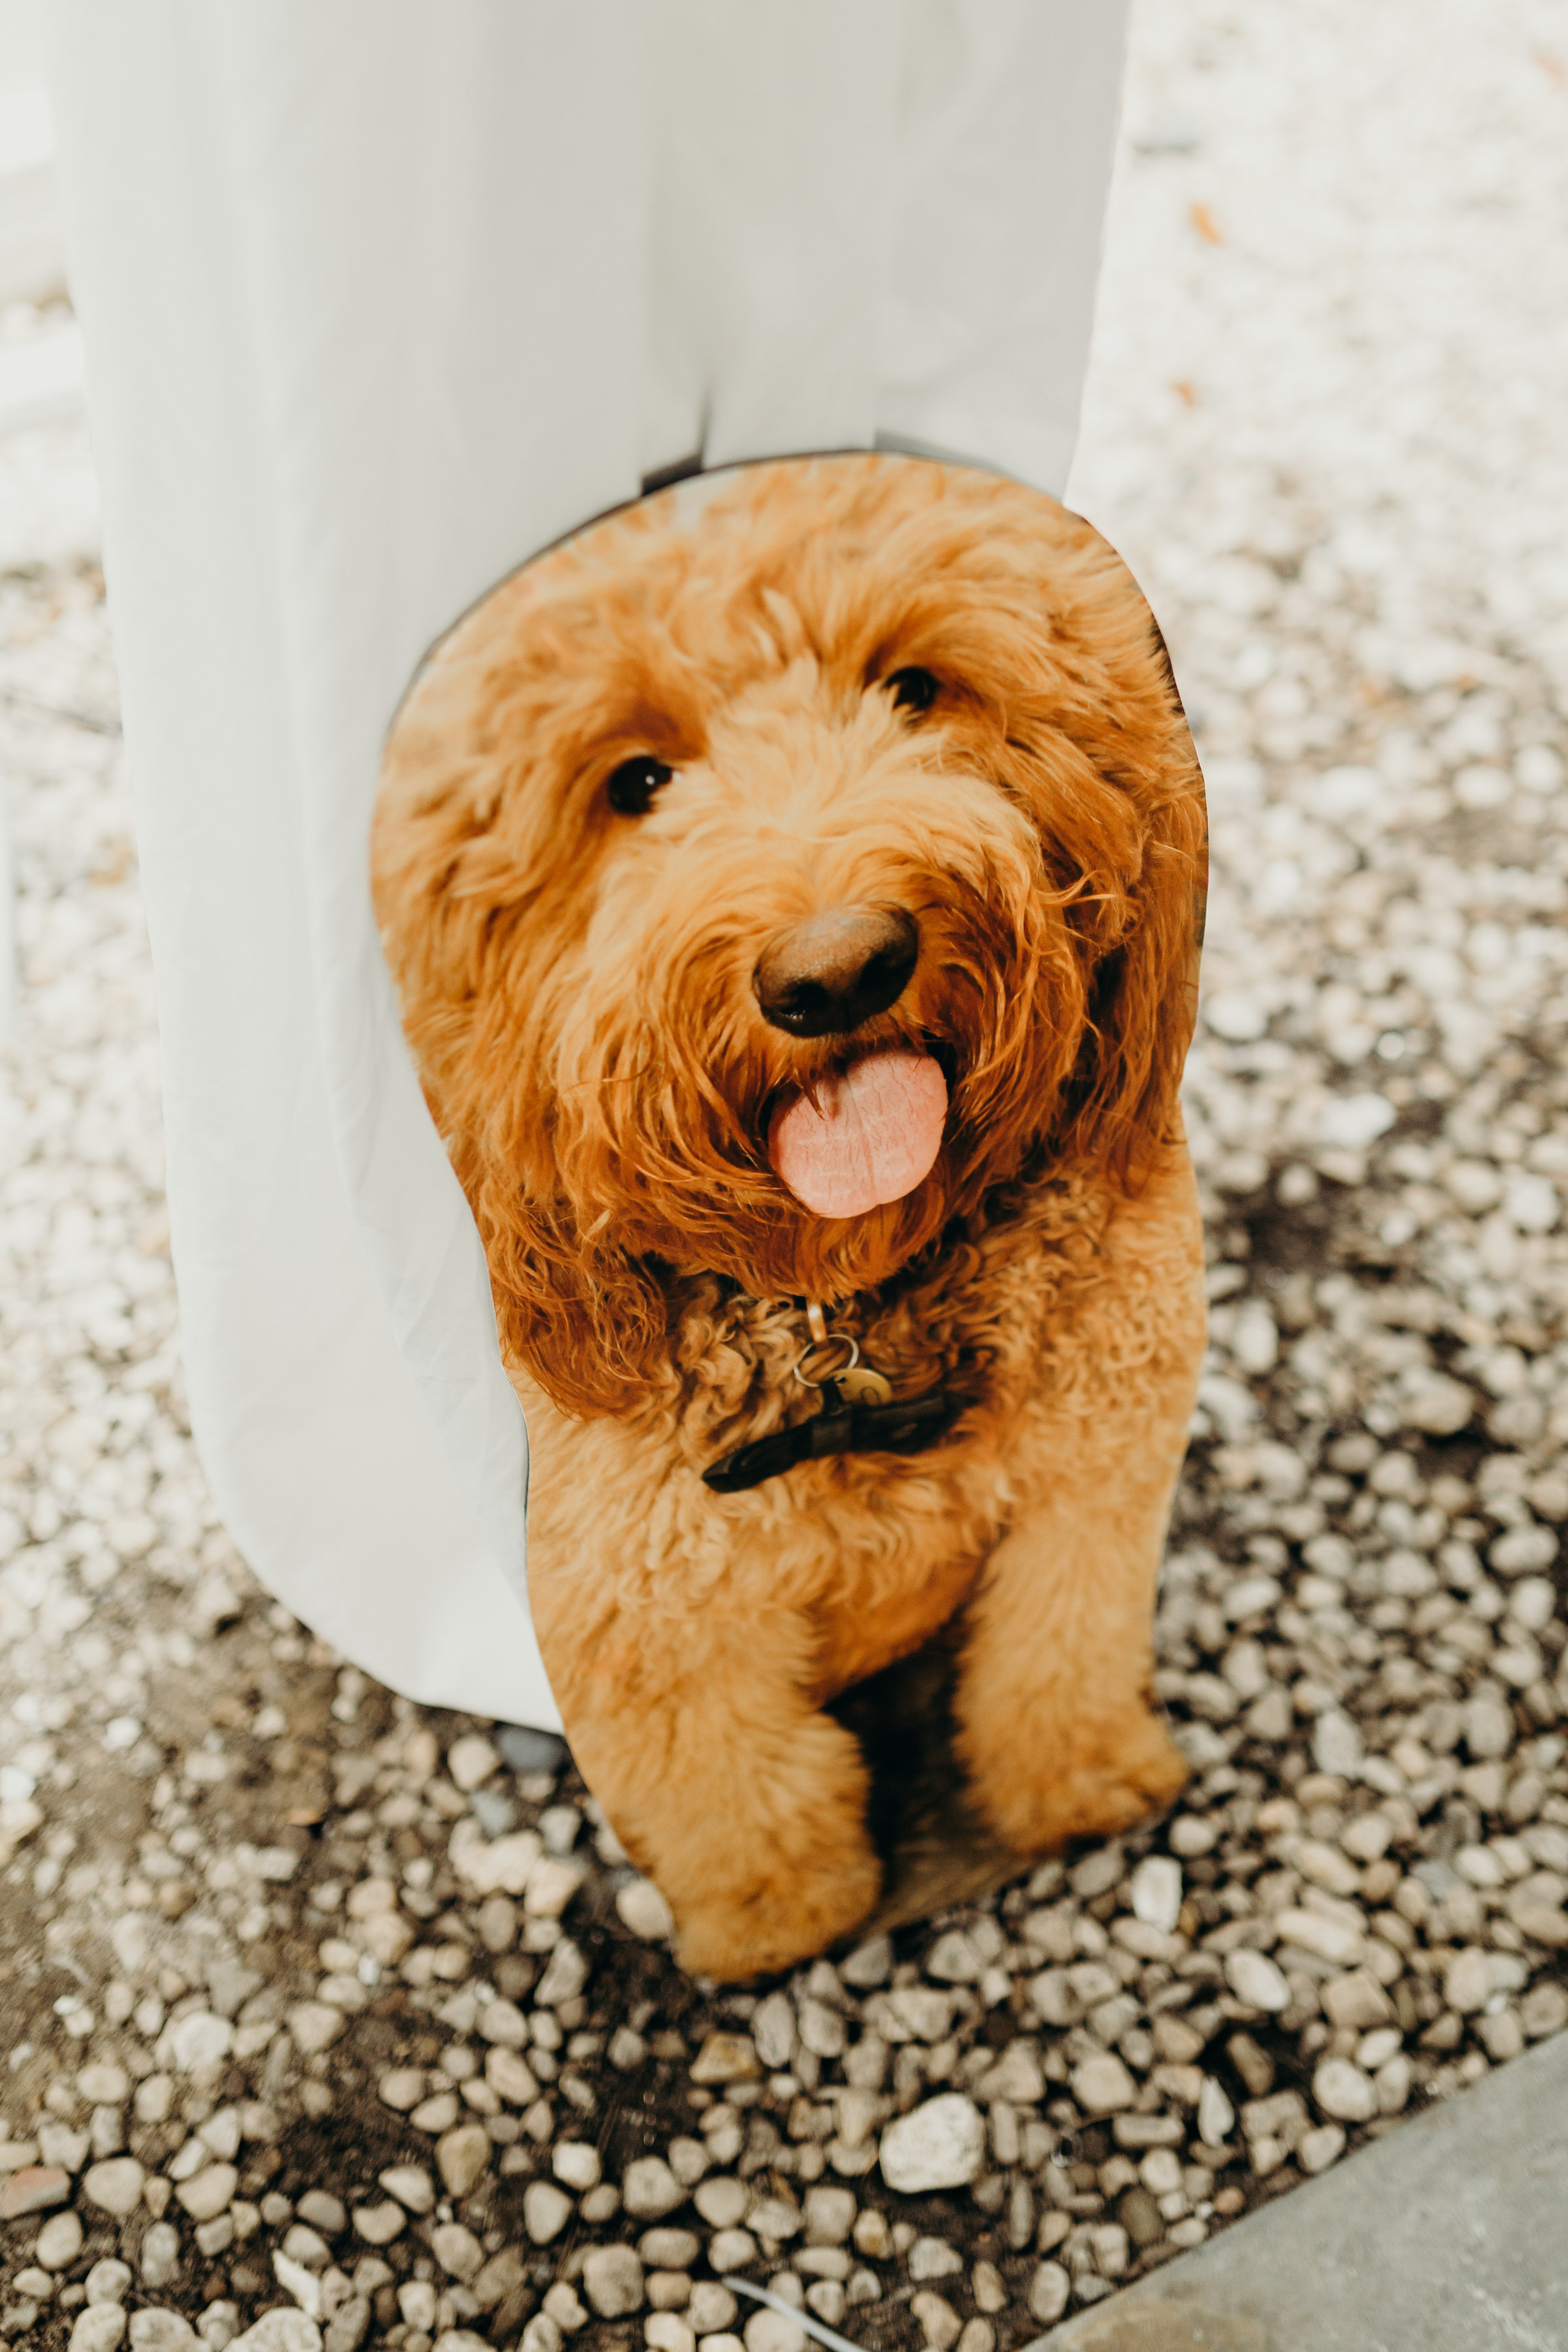 Cardboard cutout of bride's dog surprises the wedding. (Credit: Lydia Ruth Photography)